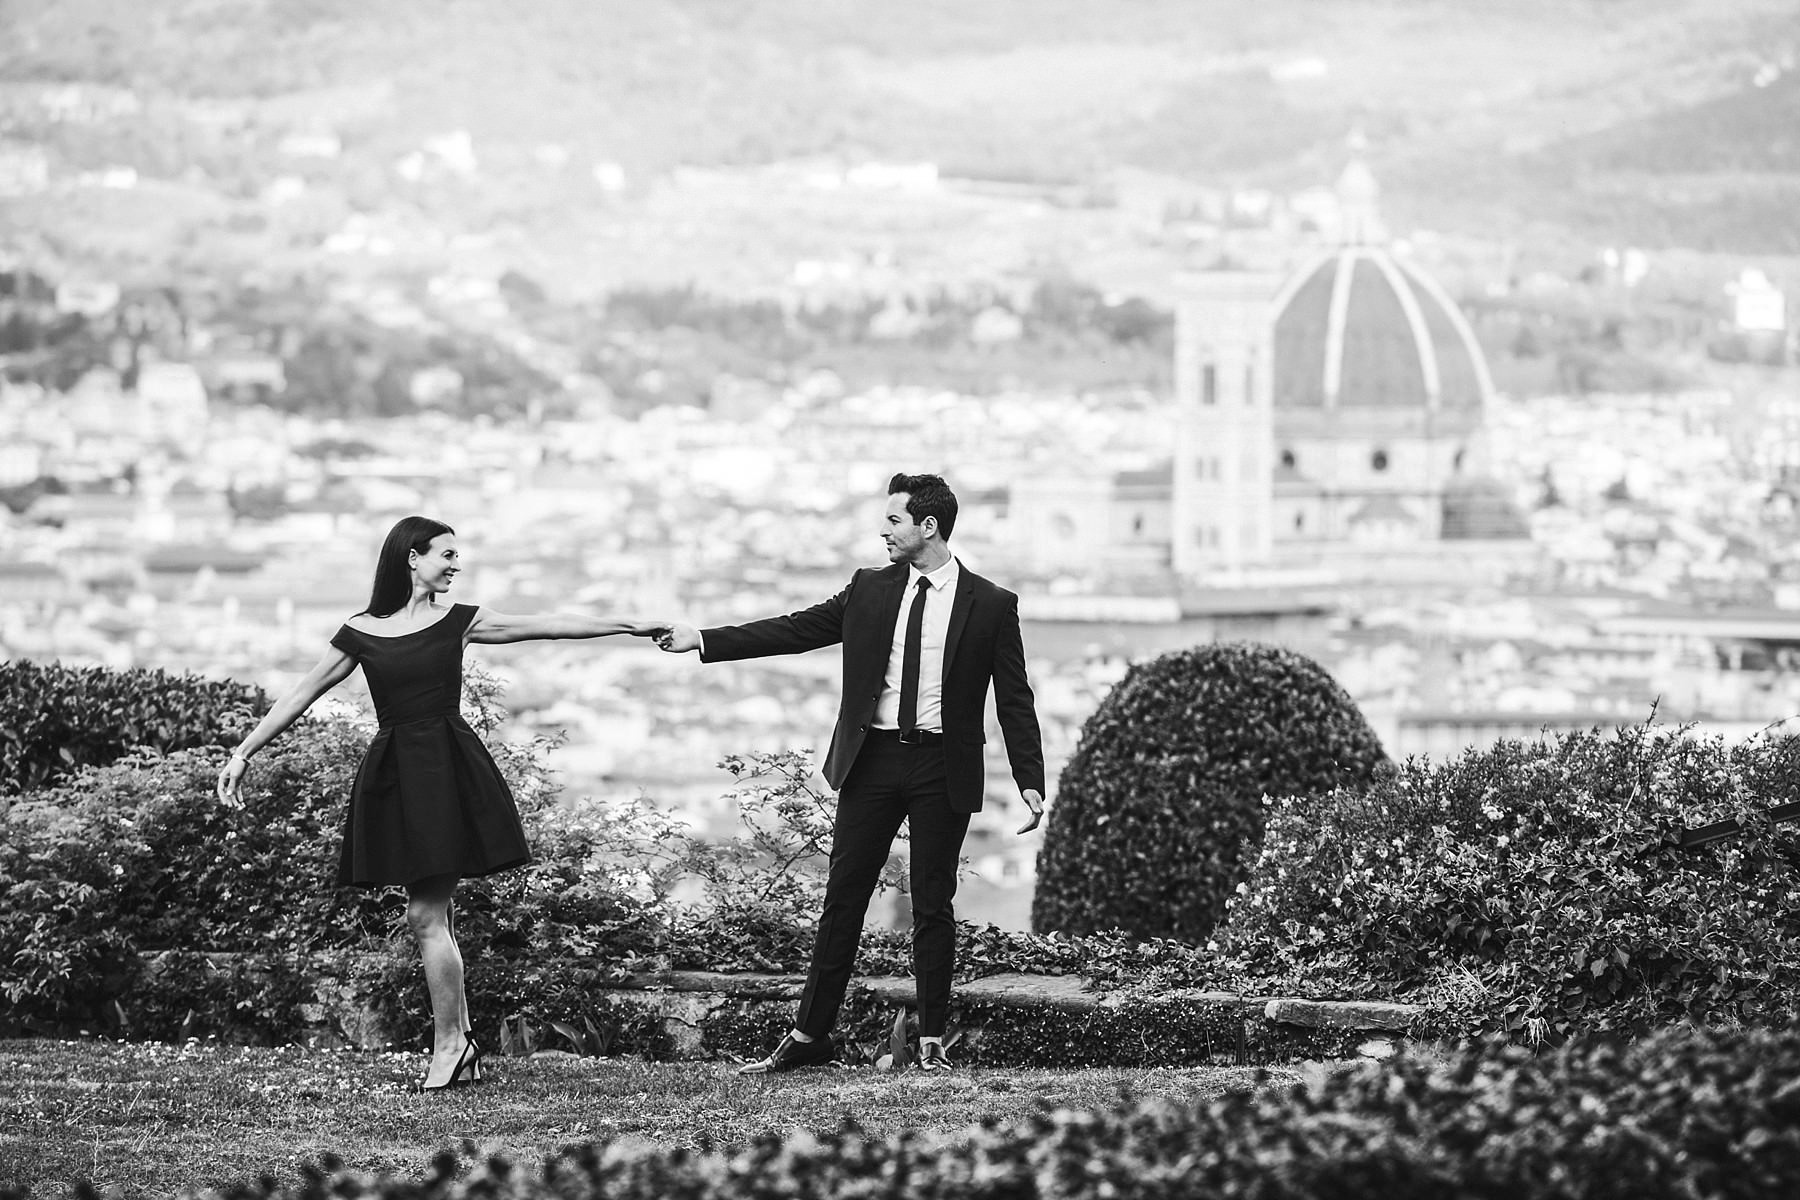 Spectacular and unique couple portrait engagement pre-wedding photo session at Torre Bellosguardo with the breathtaking scenery of Florentine Dome in the background